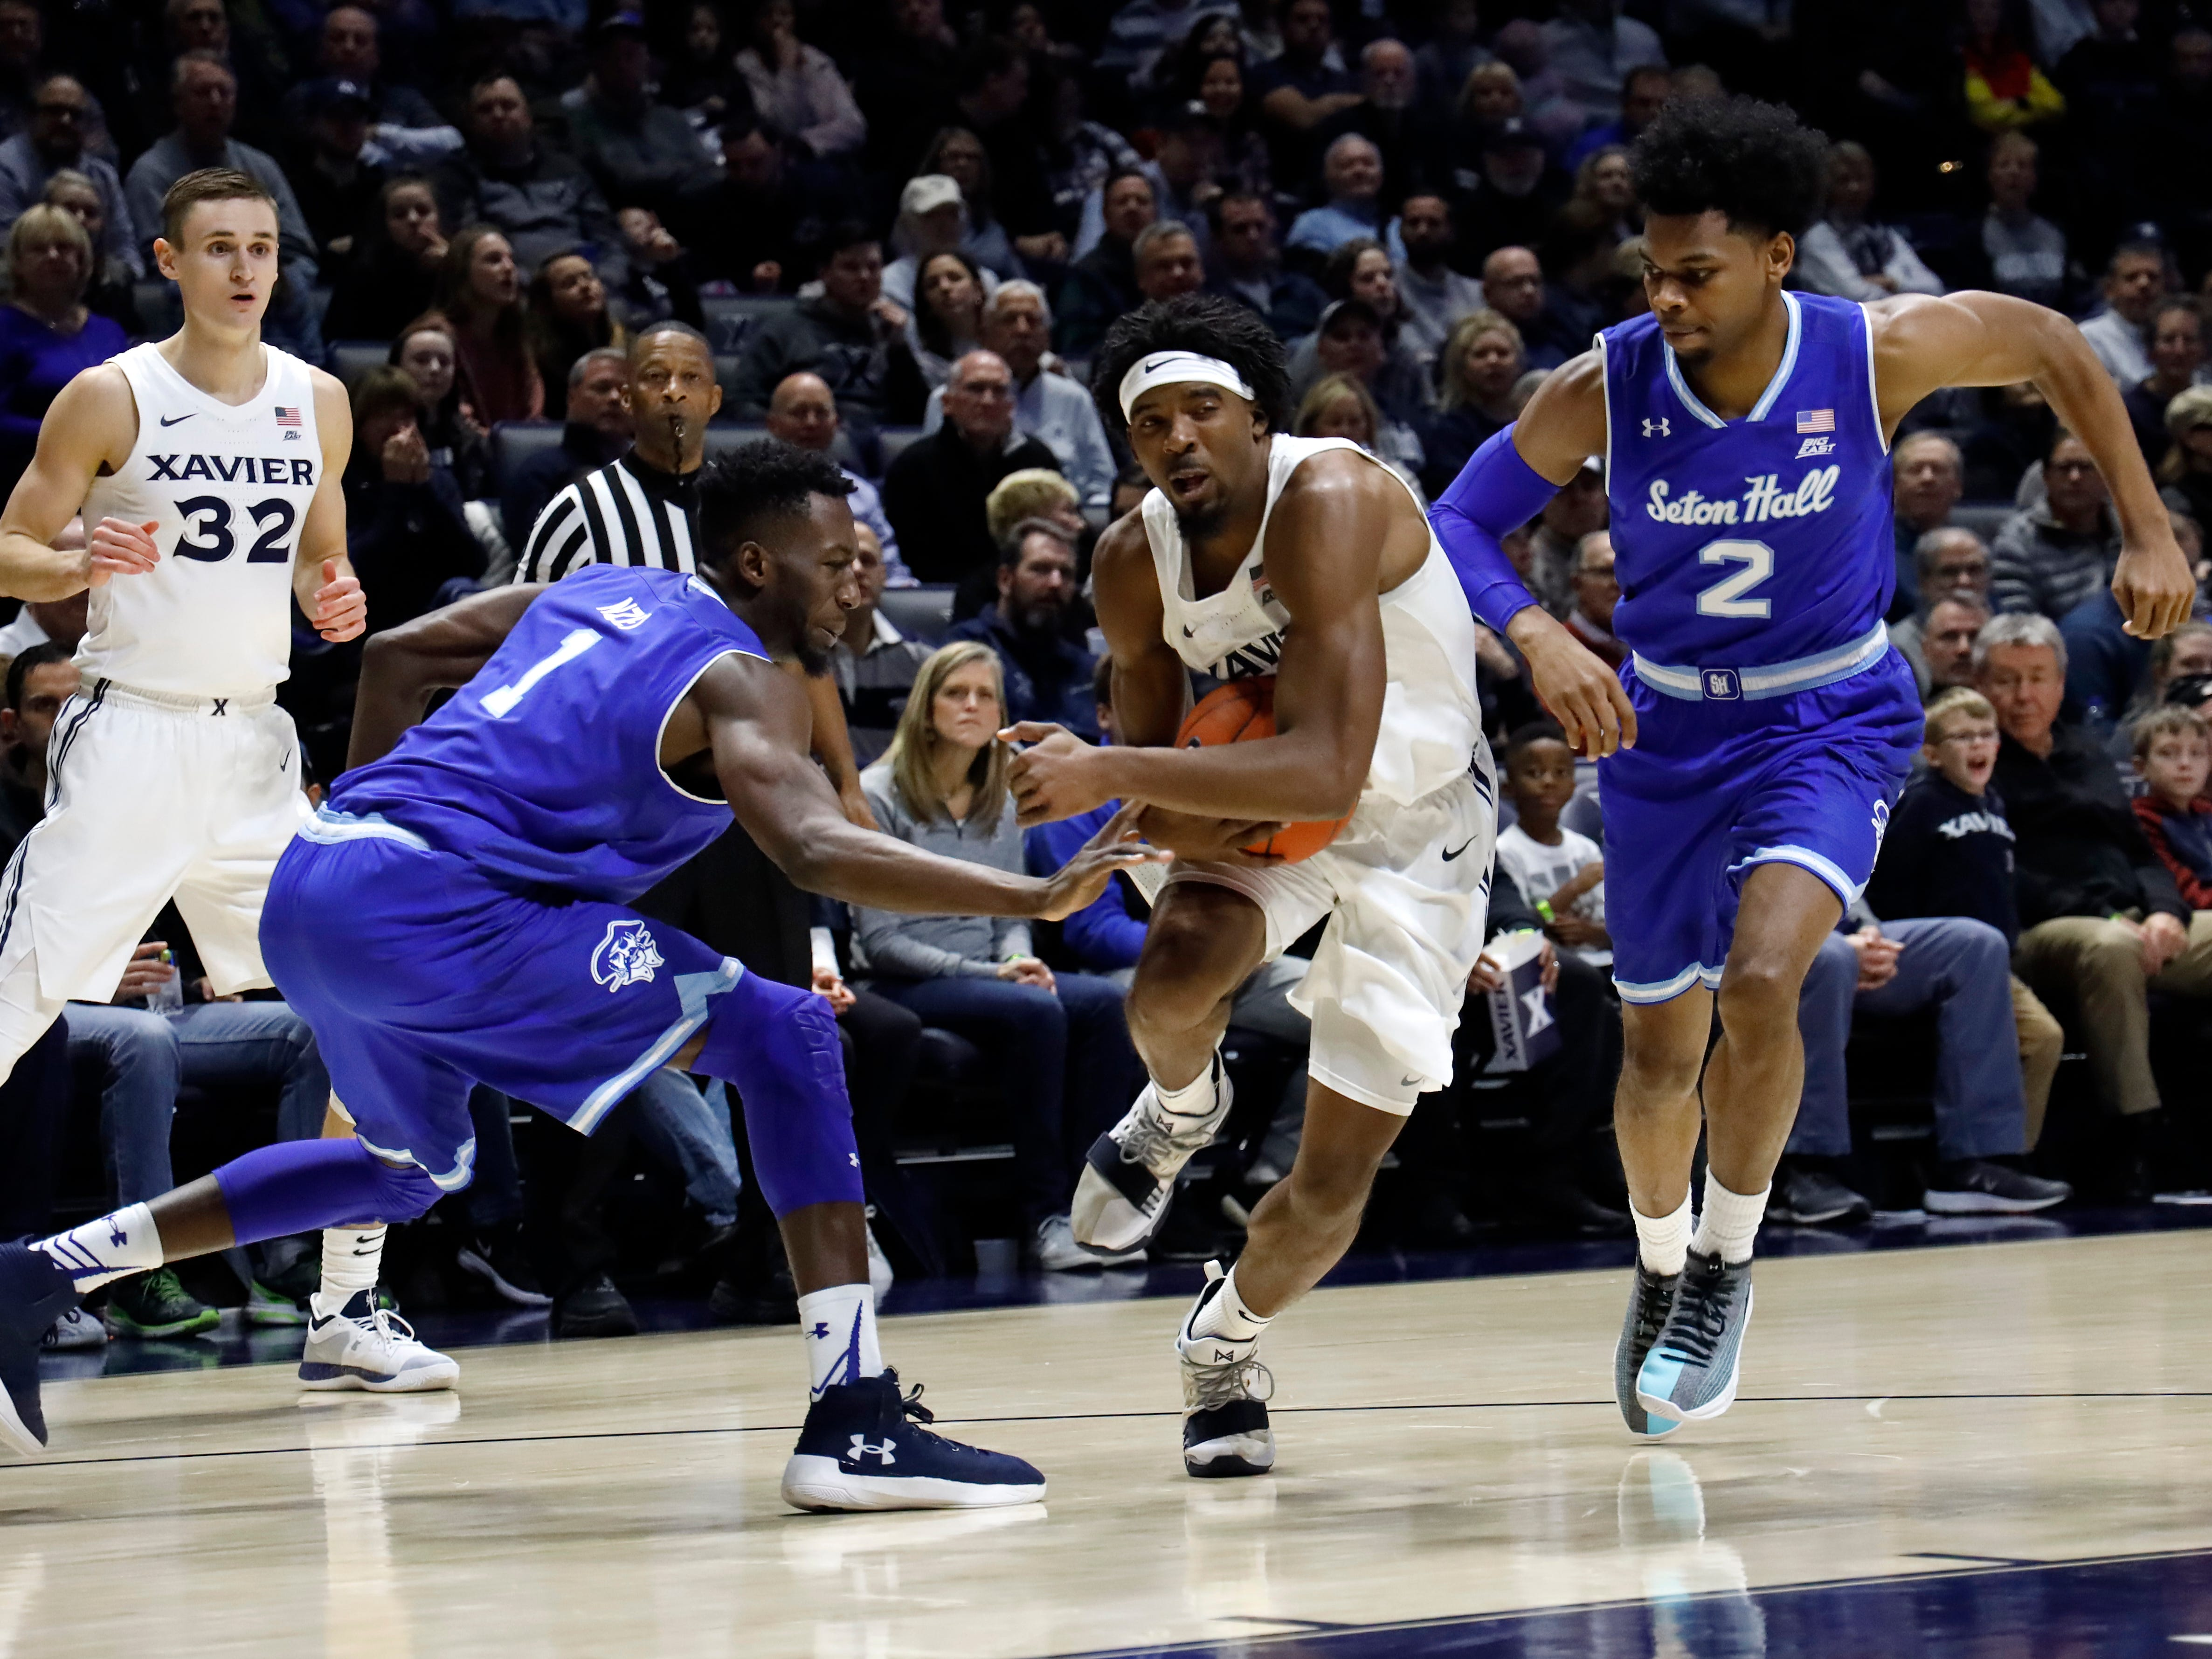 Xavier Musketeers guard Quentin Goodin (3) drives to the basket in the first half of an NCAA college basketball game against the Seton Hall Pirates, Wednesday, Jan. 2, 2019, at the Cintas Center in Cincinnati.